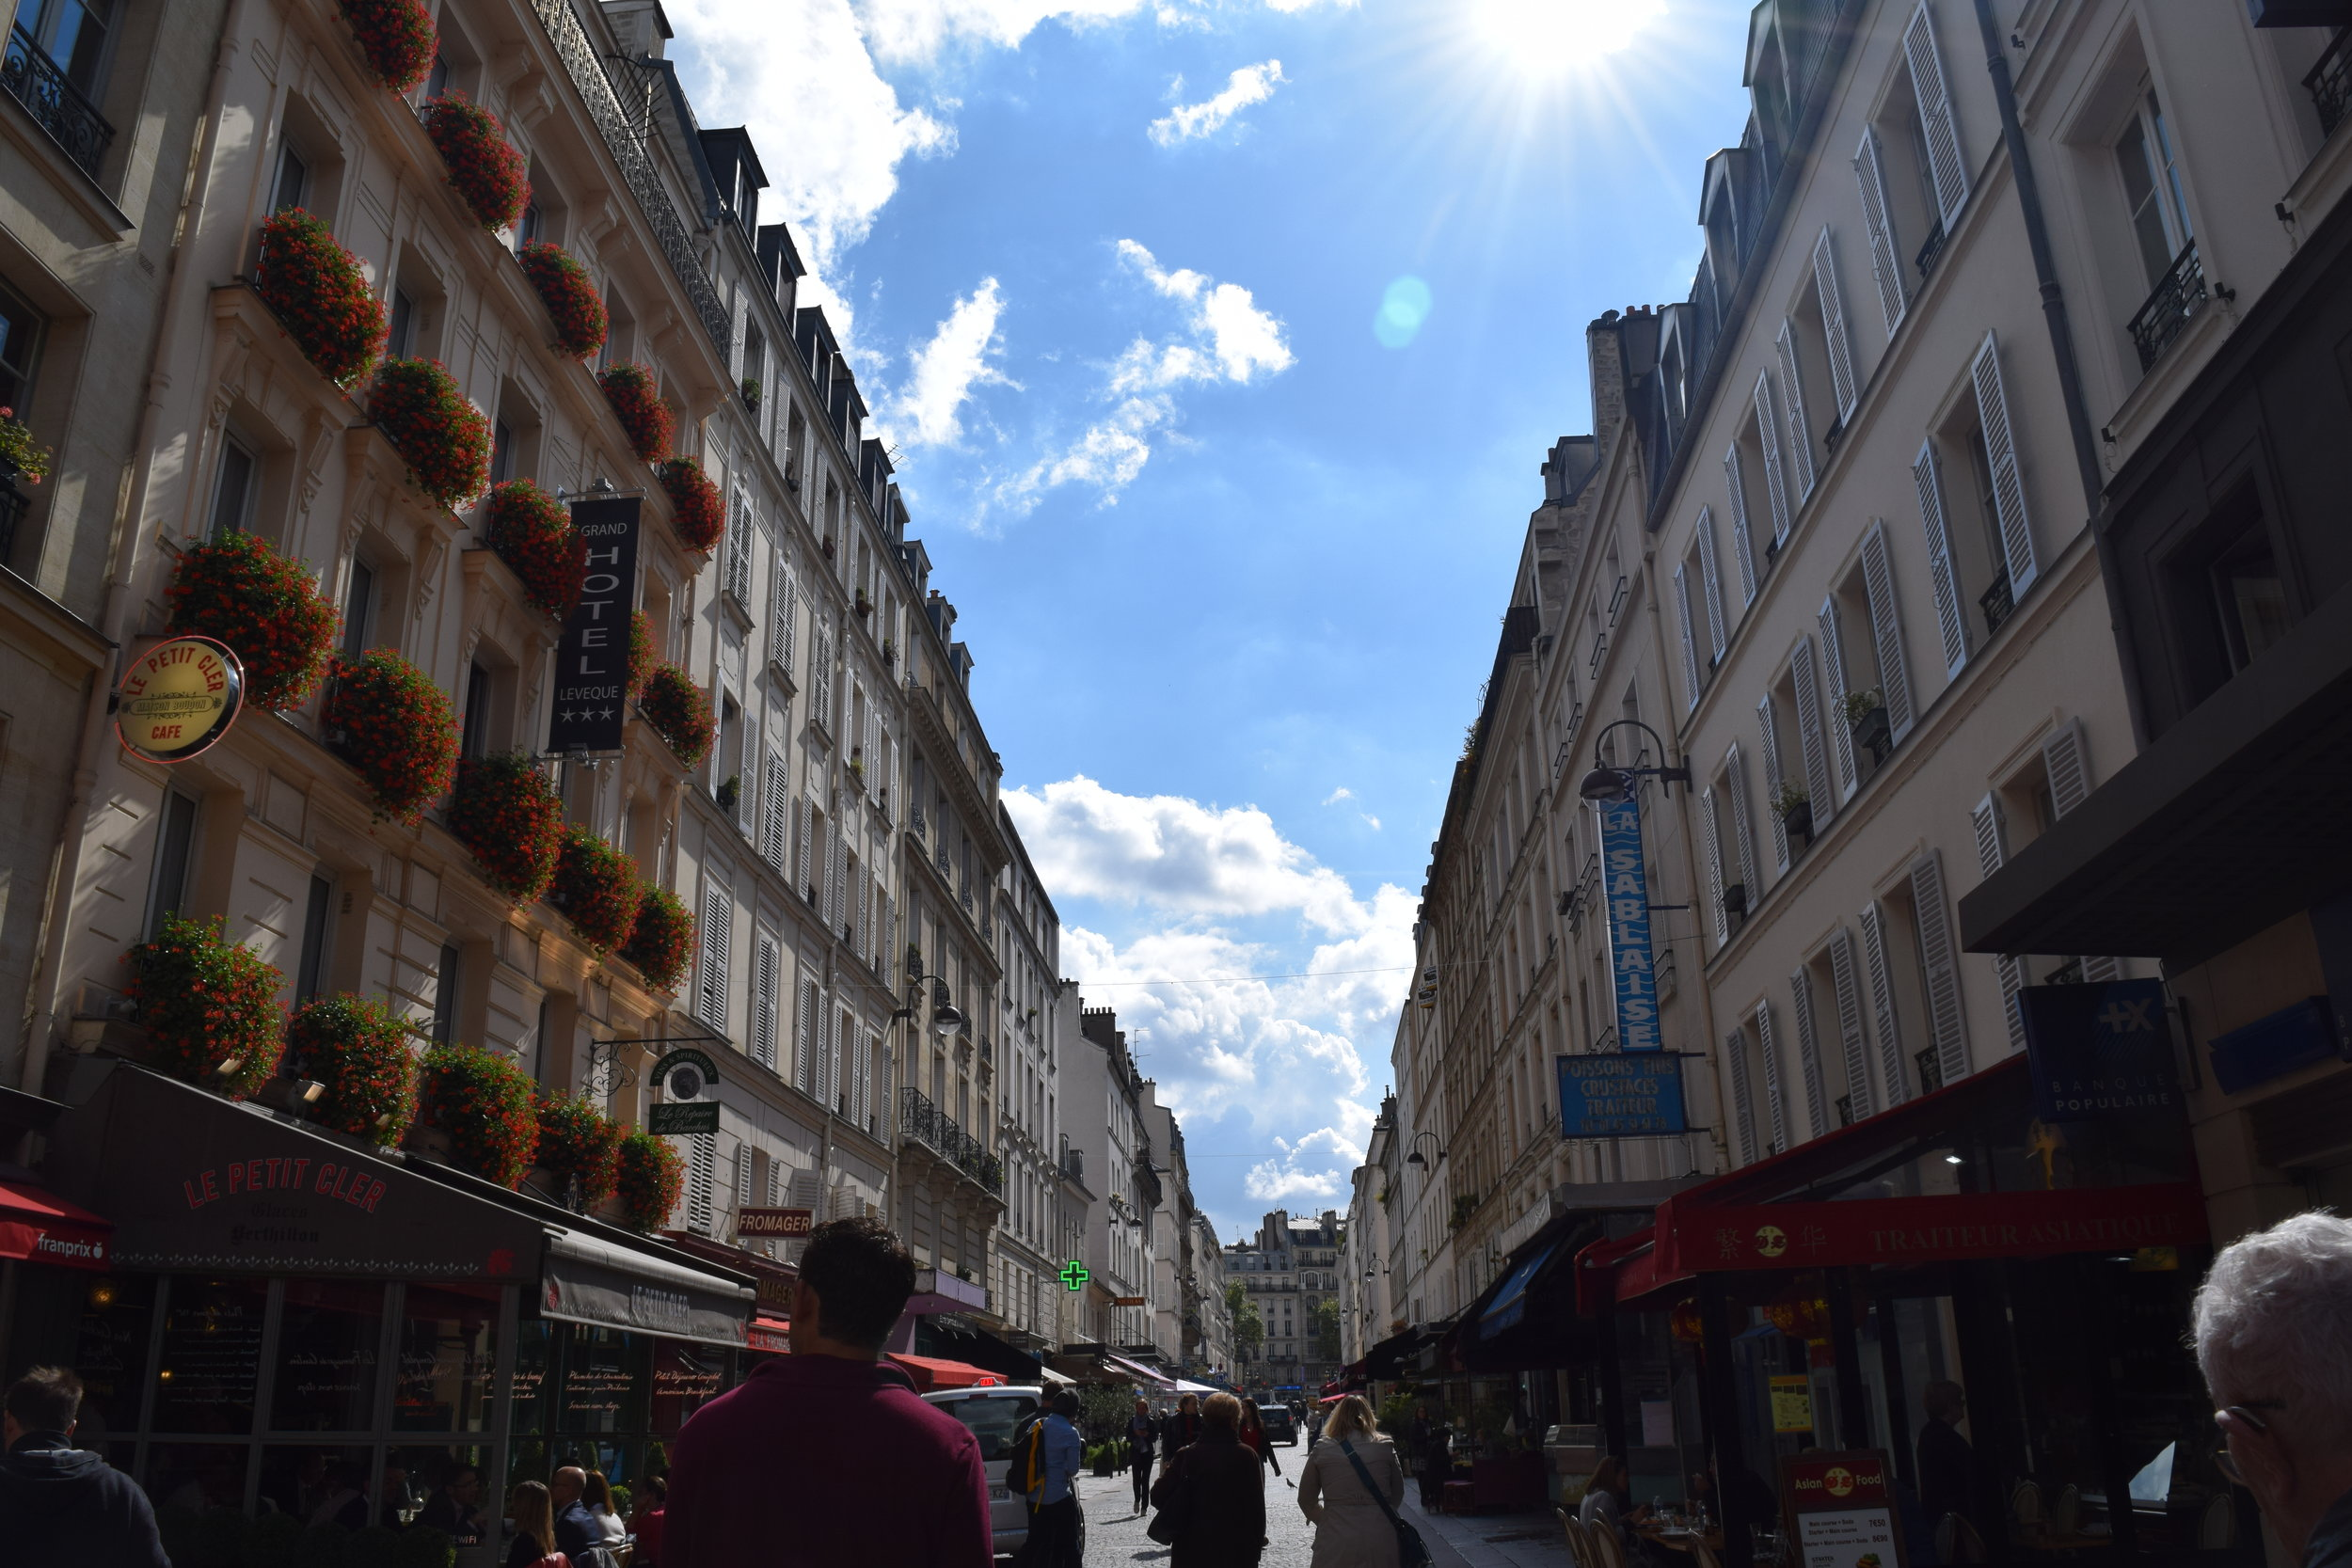 Lunch on Rue Cler, the famous market street